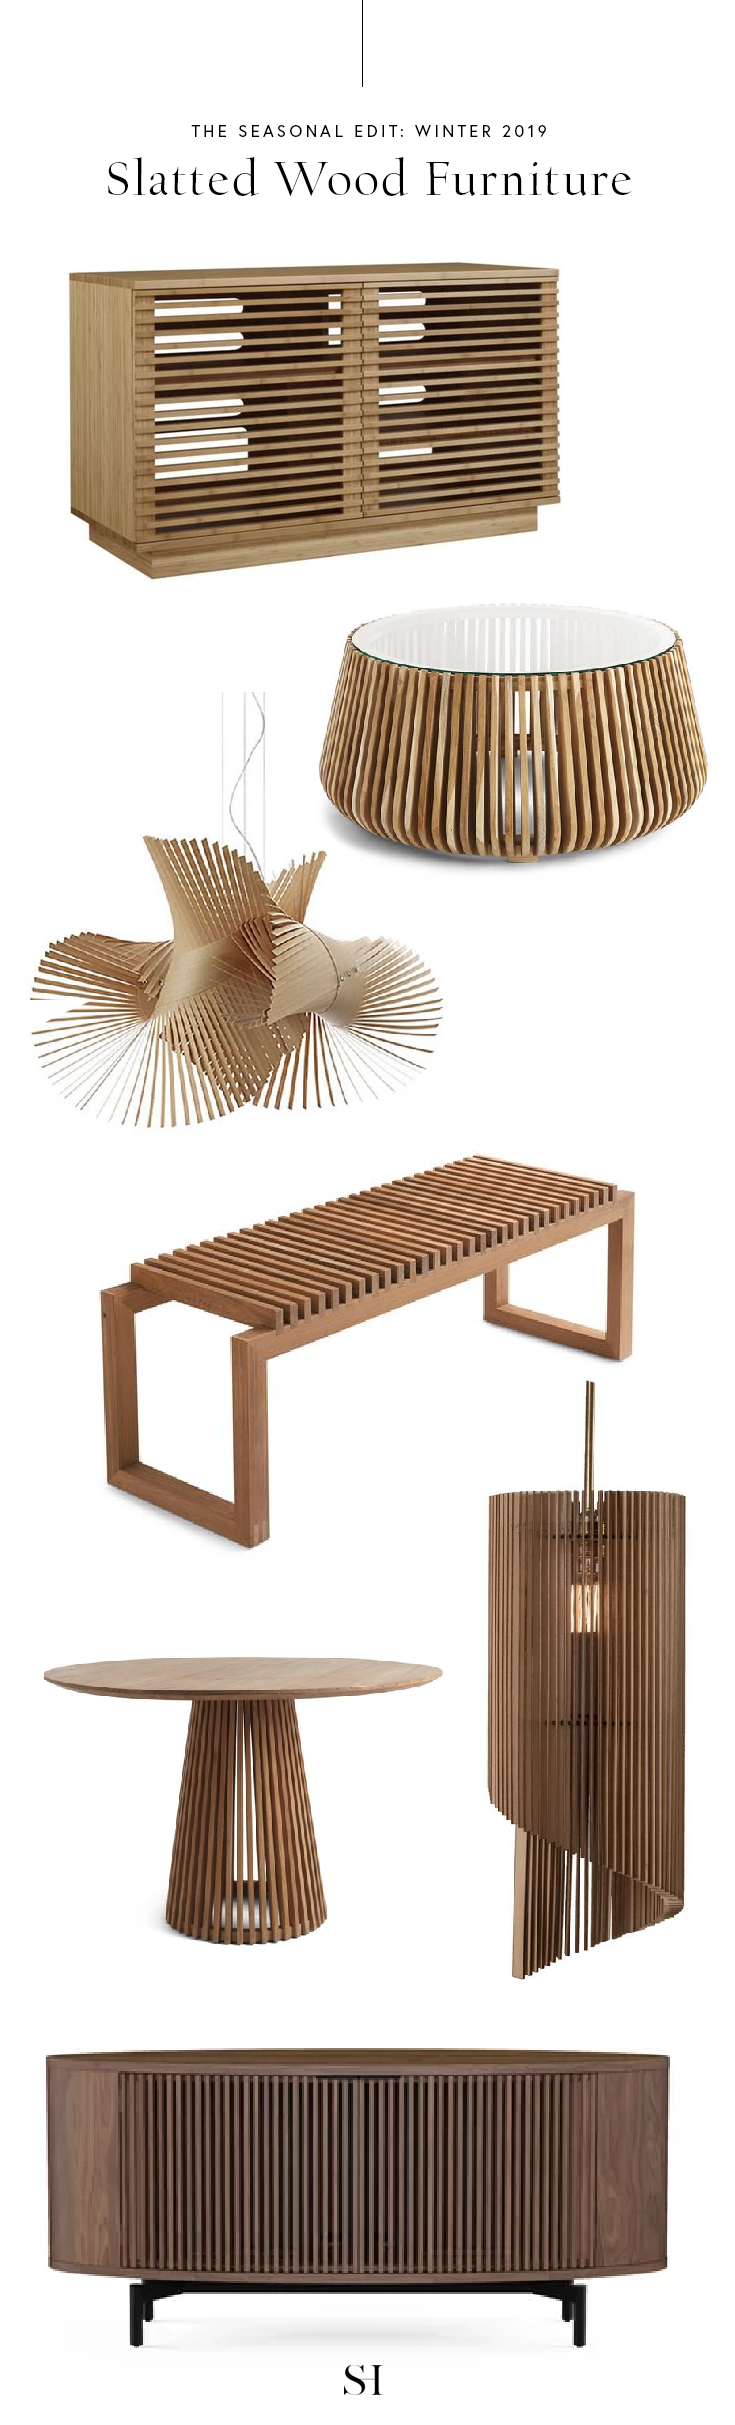 timber cladding and slatted wood furniture.png